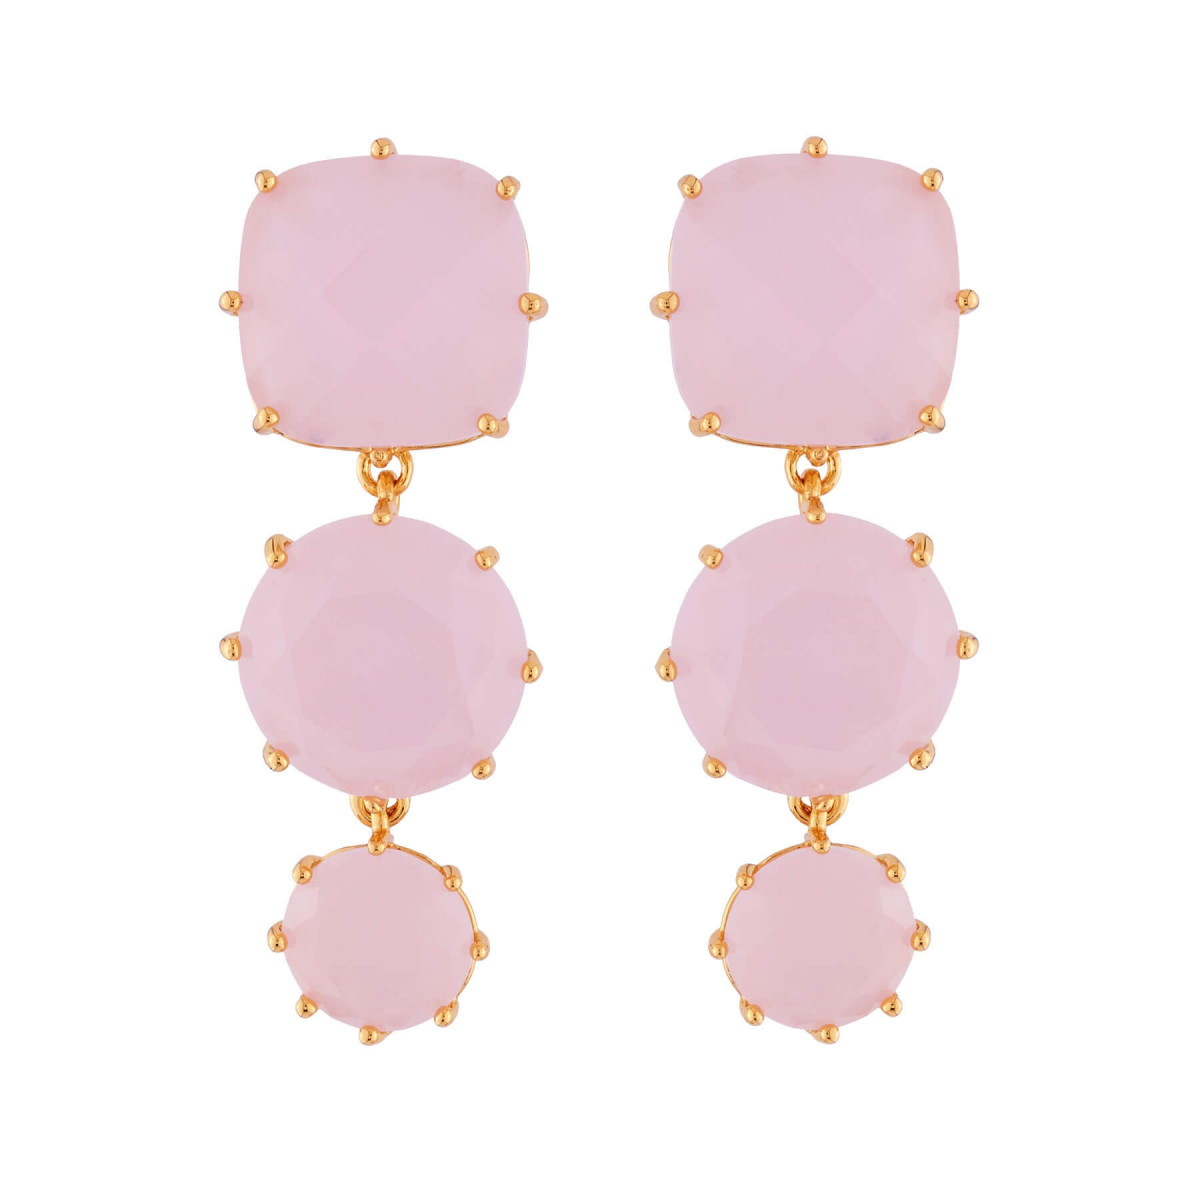 Earrings With 3 Pink Stones Les Néréides